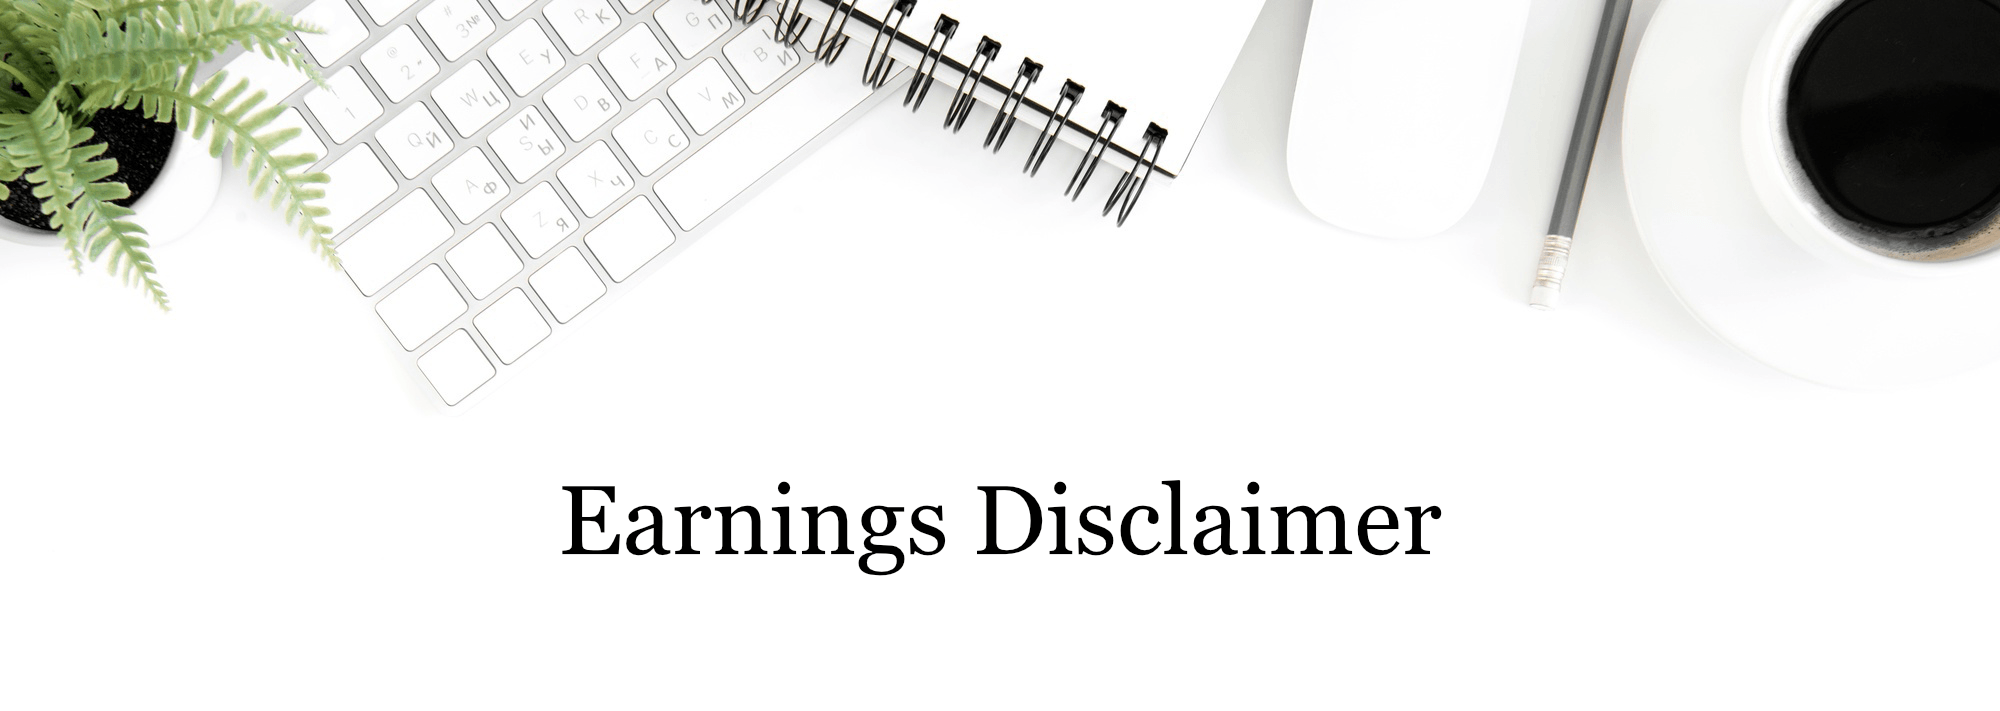 Earnings Disclaimer >> Earnings Disclaimer Emails That Convert